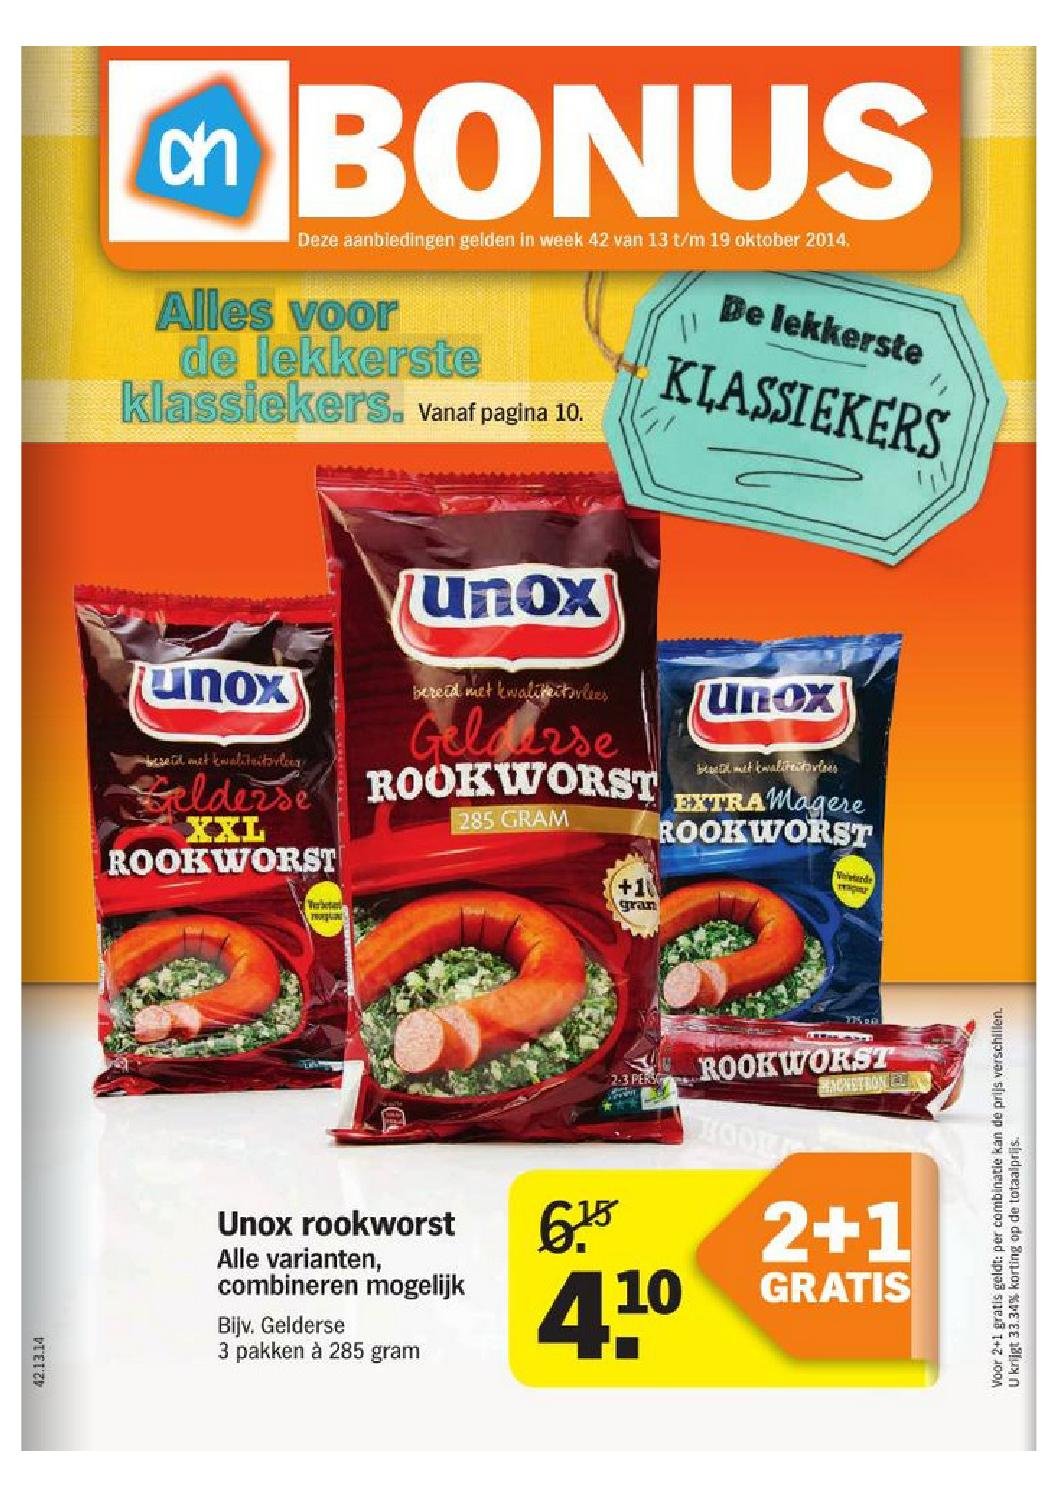 Ah Aanbiedingen Folder Albert Heijn Folder Week 42 By Online Folders Issuu